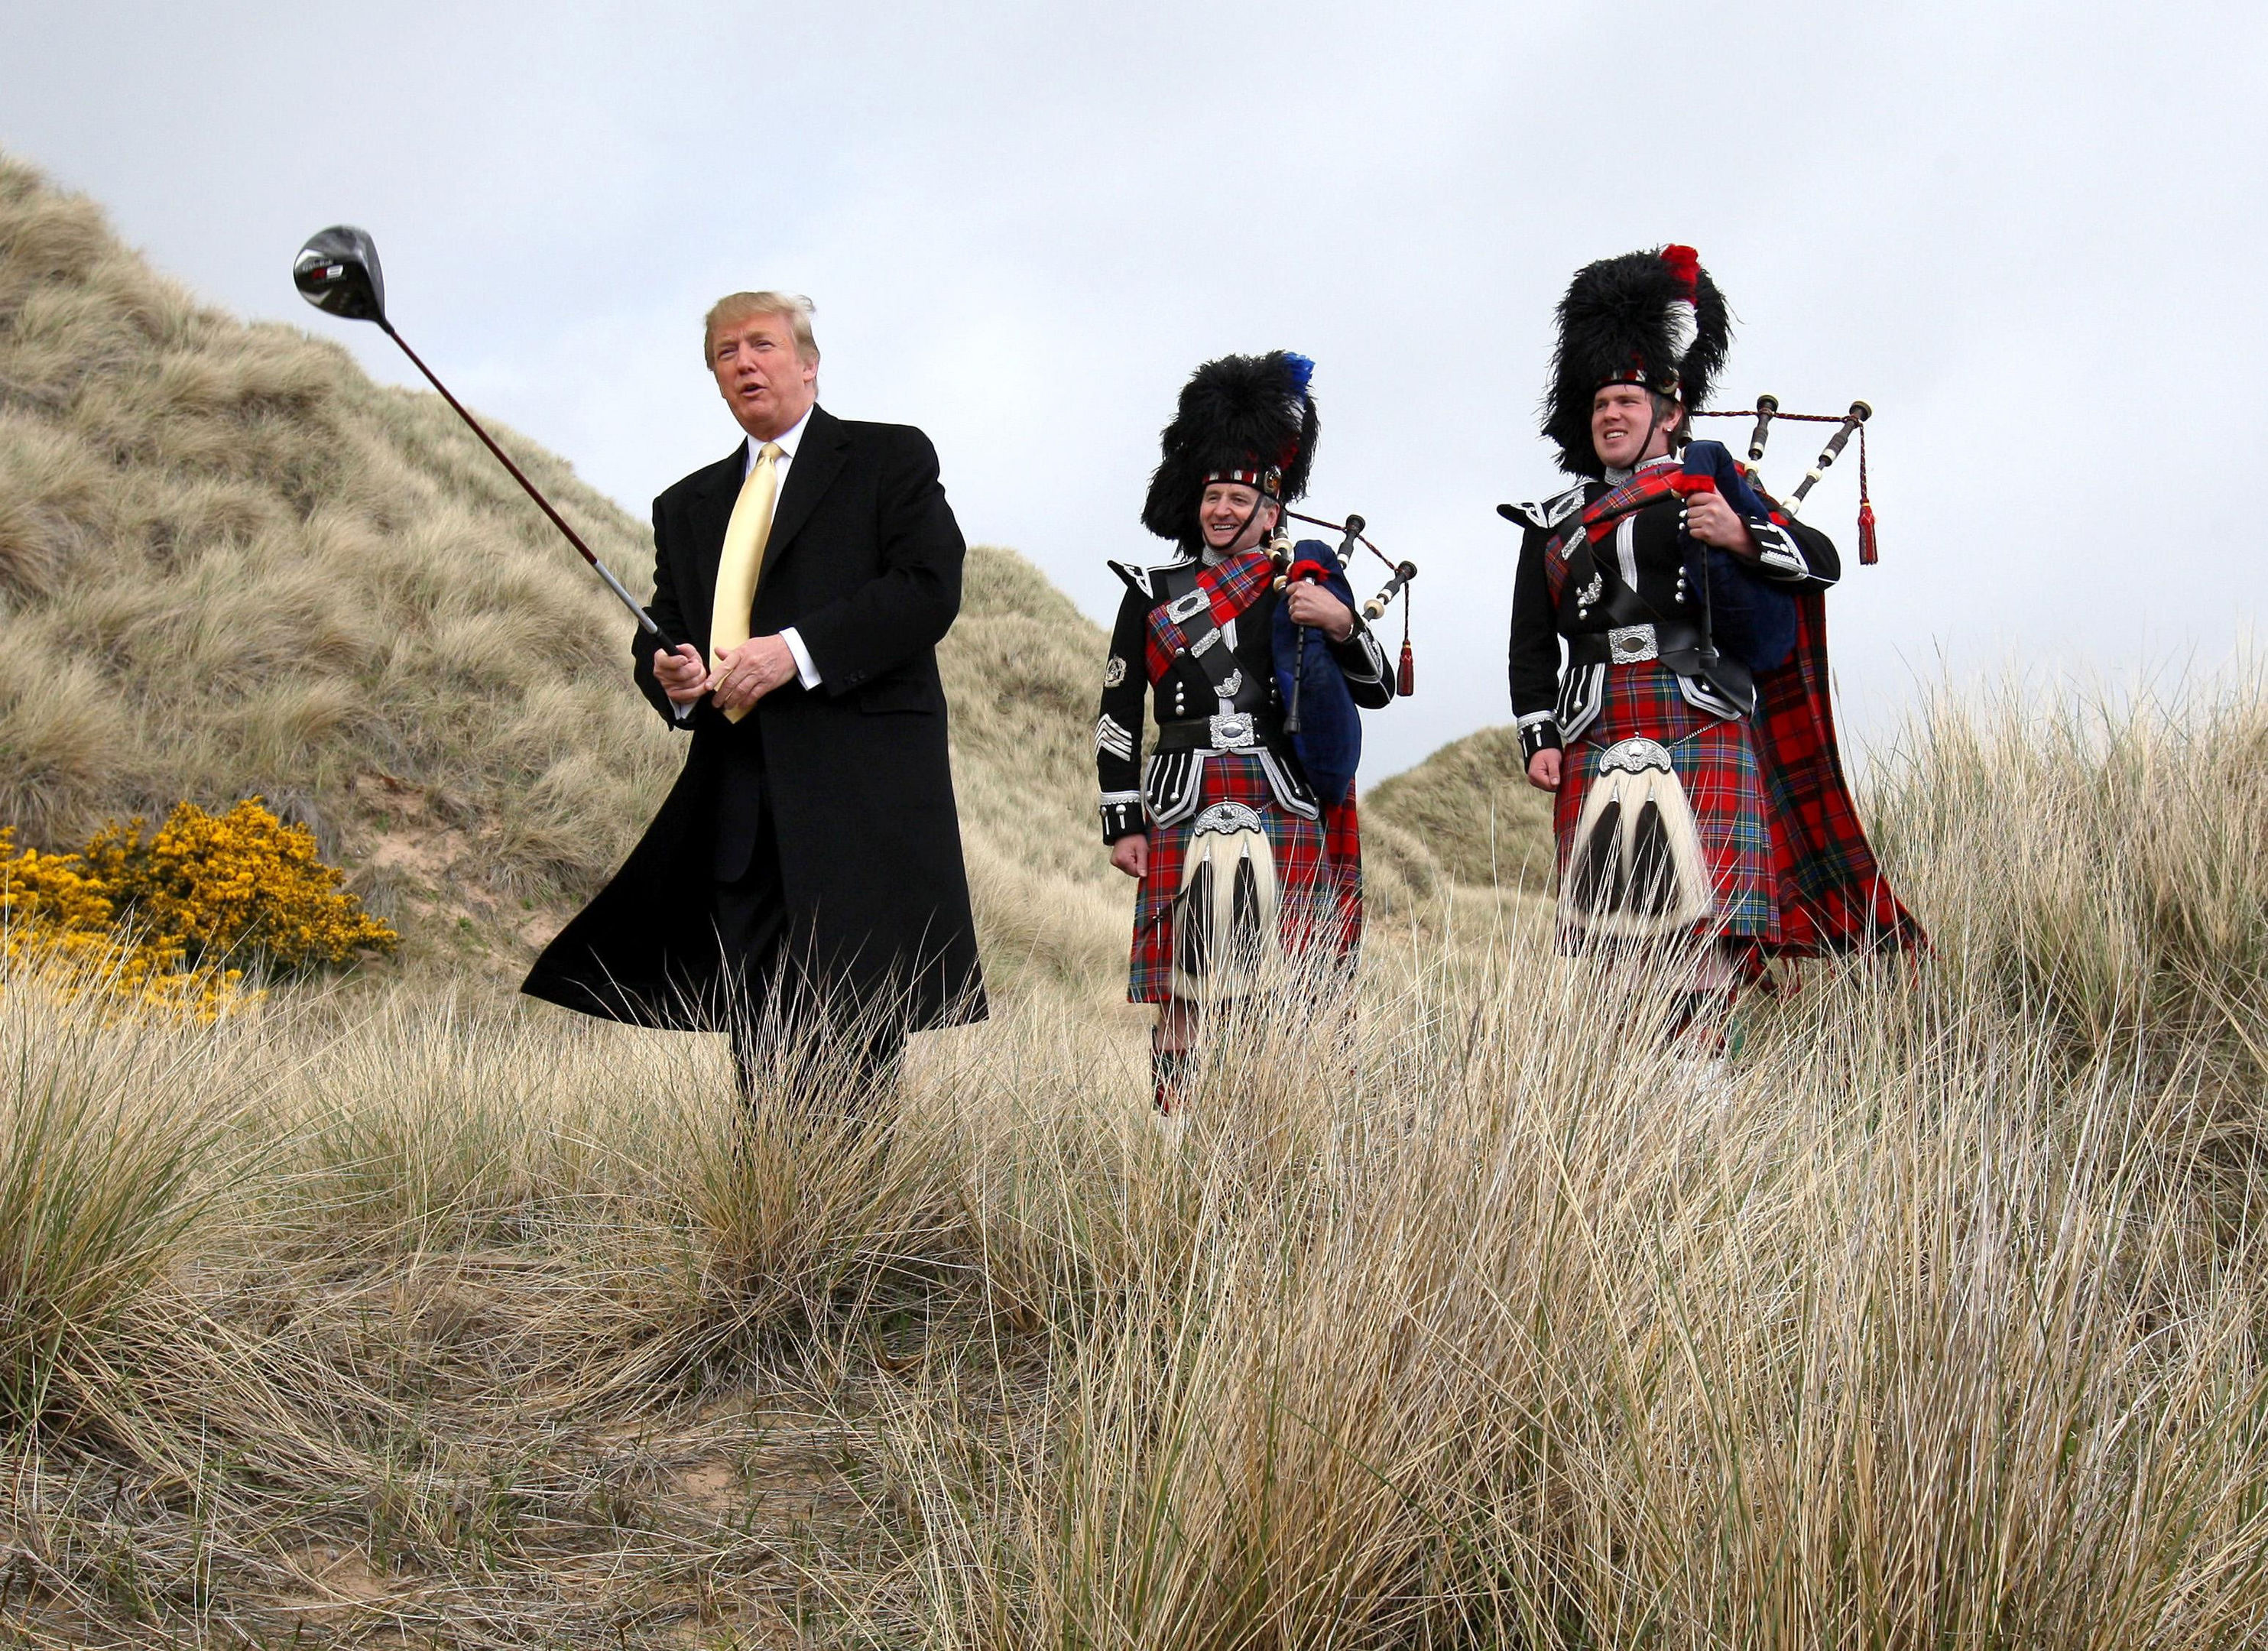 Donald Trump visiting the Menie Estate in Aberdeenshire before his golf resort was built (Andrew Milligan/PA Wire)